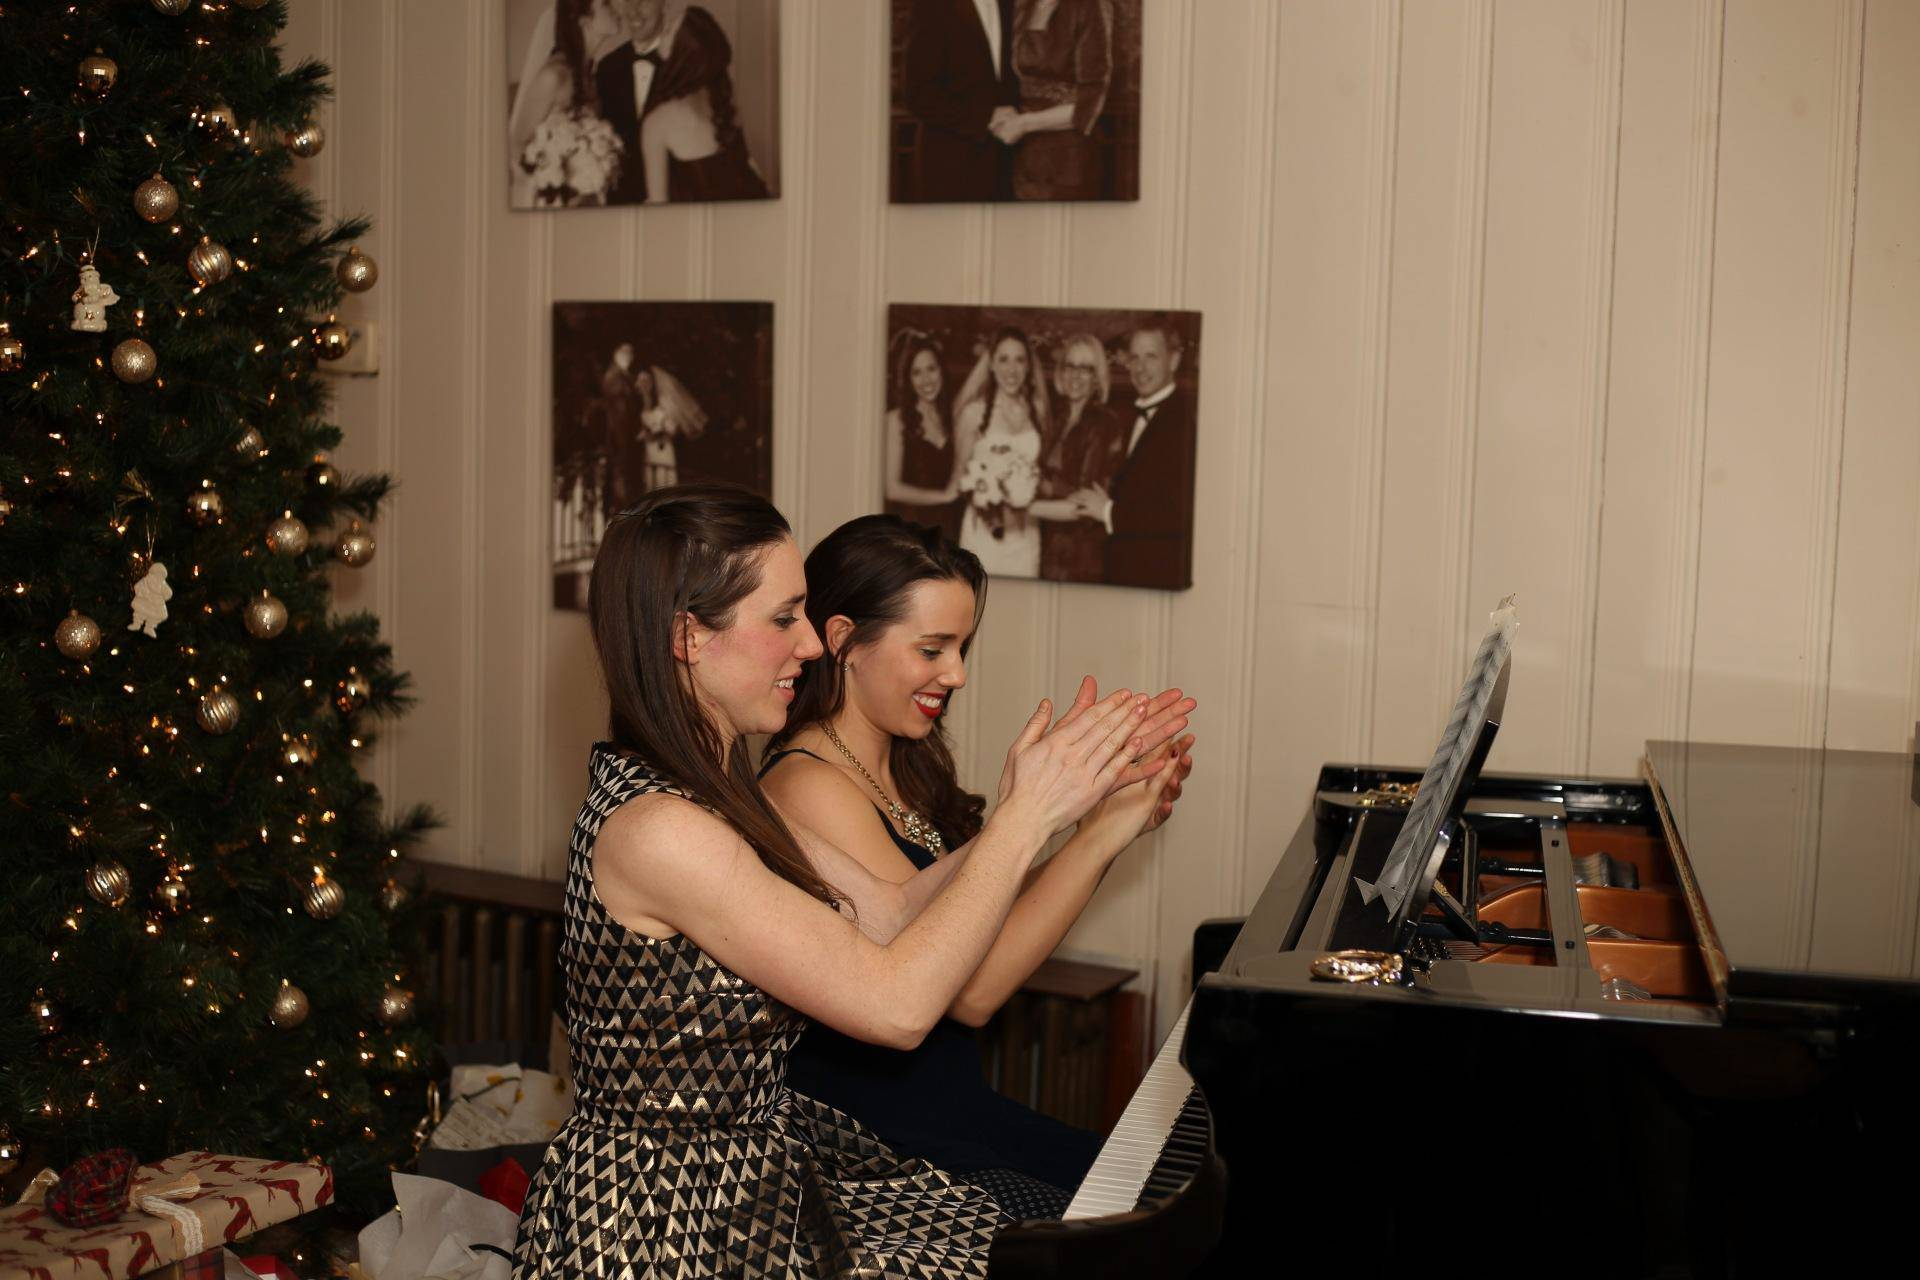 Sister piano duet of Sleigh Ride for Christmas Eve